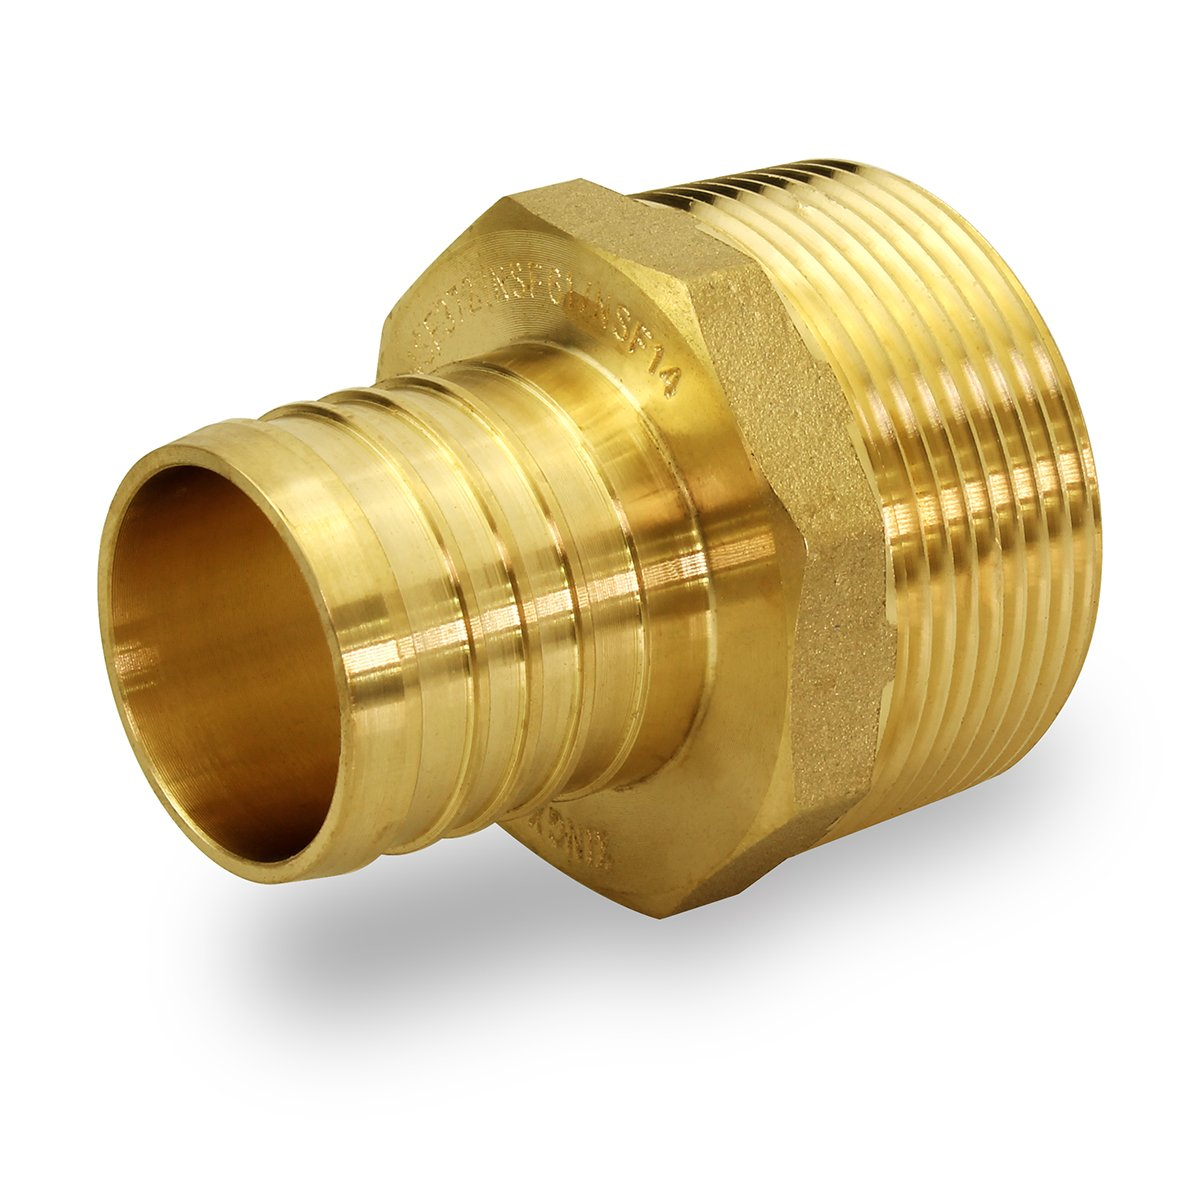 "EPMA1034-NL Brass Fitting 1/"" PEX x 3//4/"" Male MIP thread Adapter"